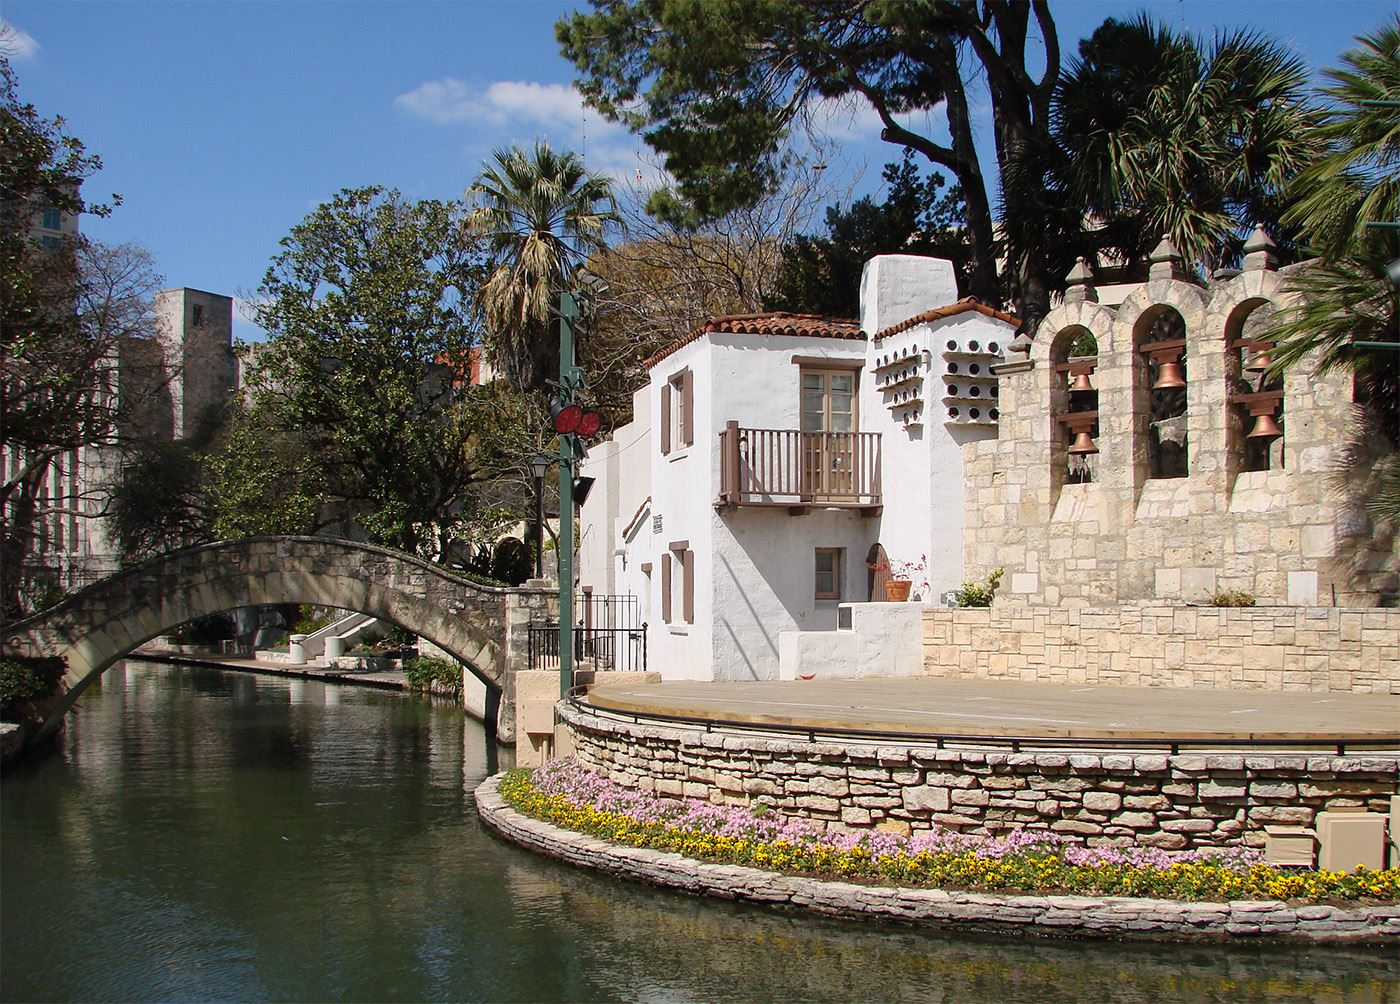 San Antonio River Walk, photo courtesy of Kenneth Hafertepe